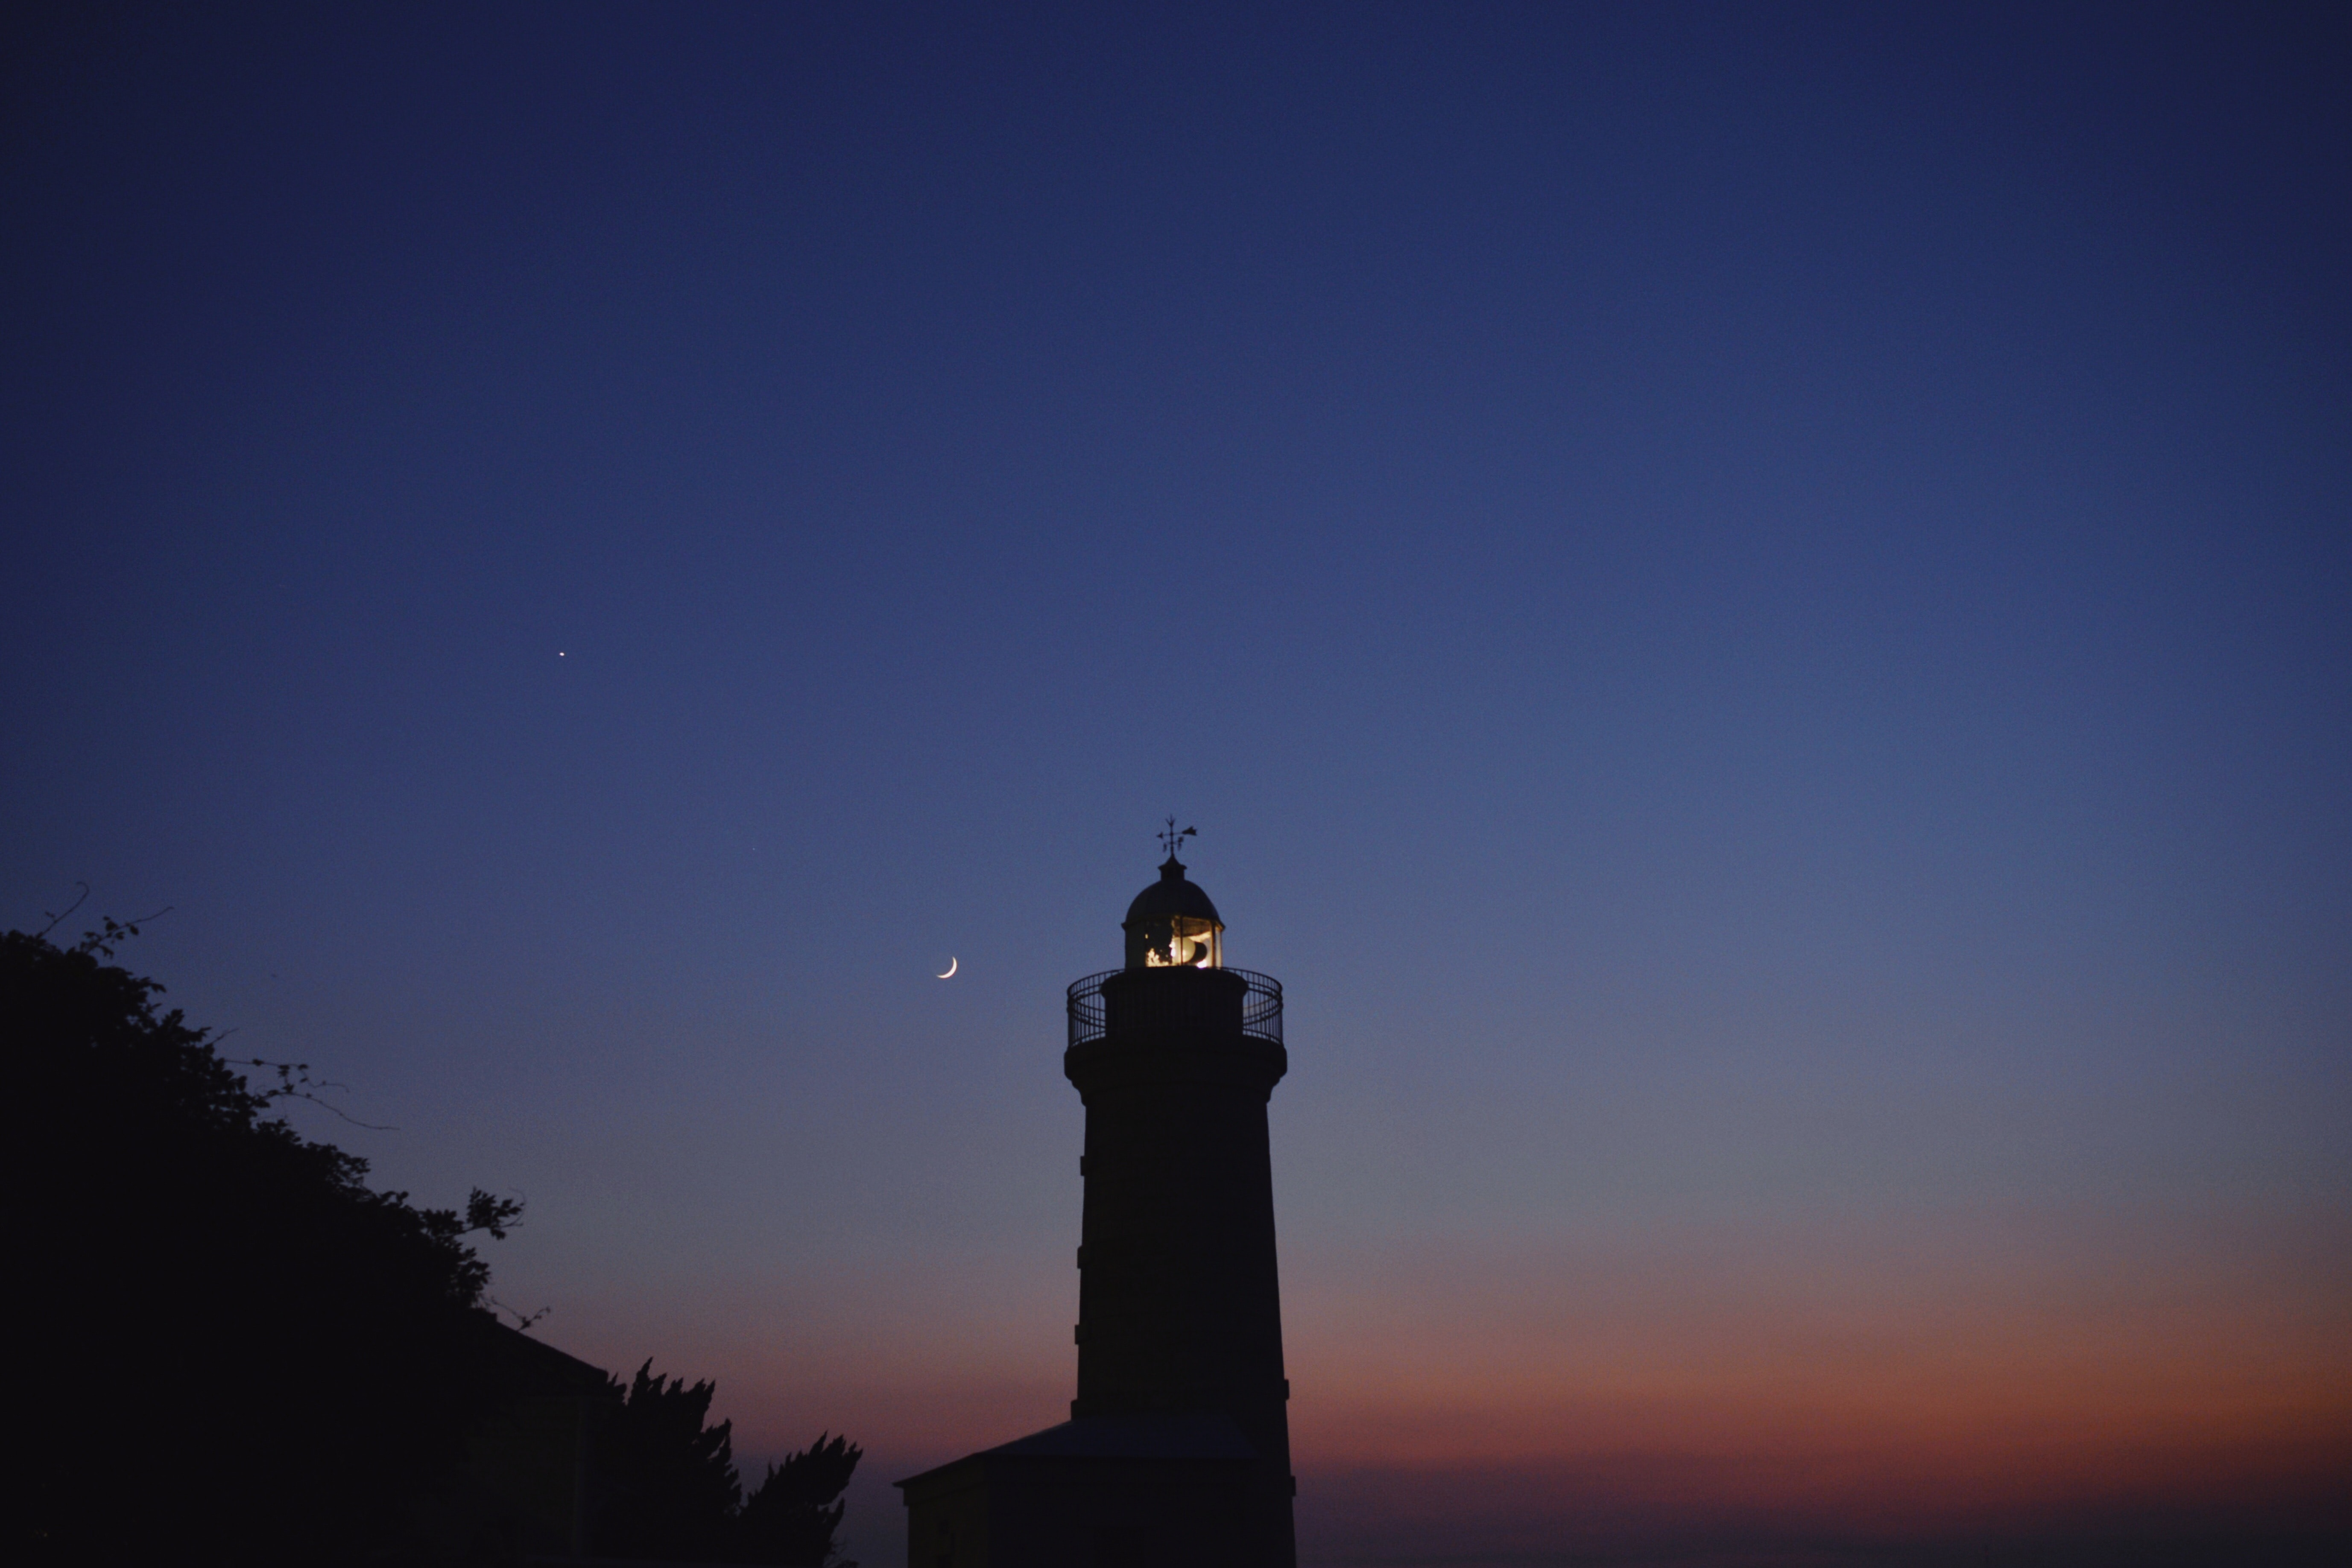 silhouette of lighthouse during nighttime